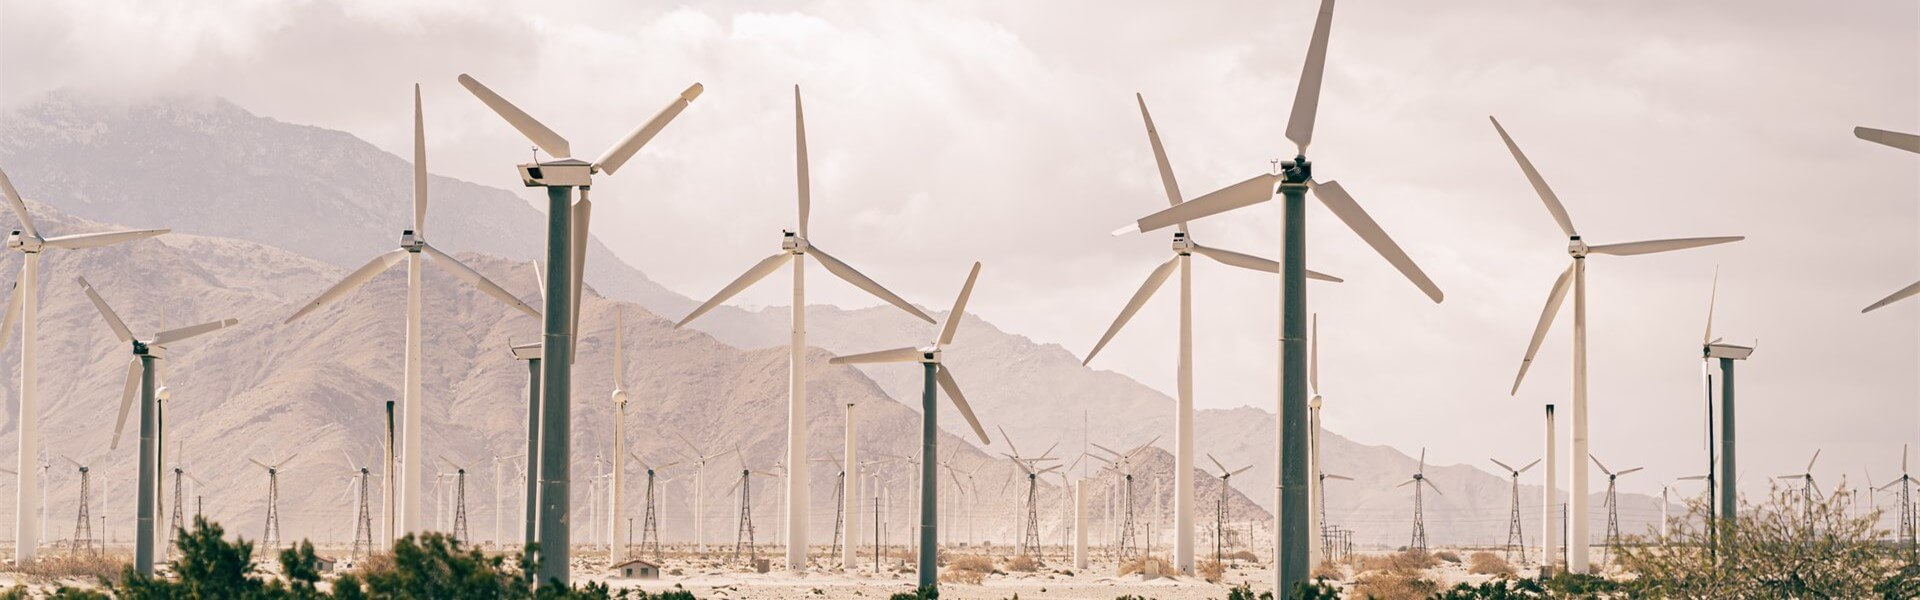 Digitize Giant Wind Turbine Hub with KSCAN 3D Scanner